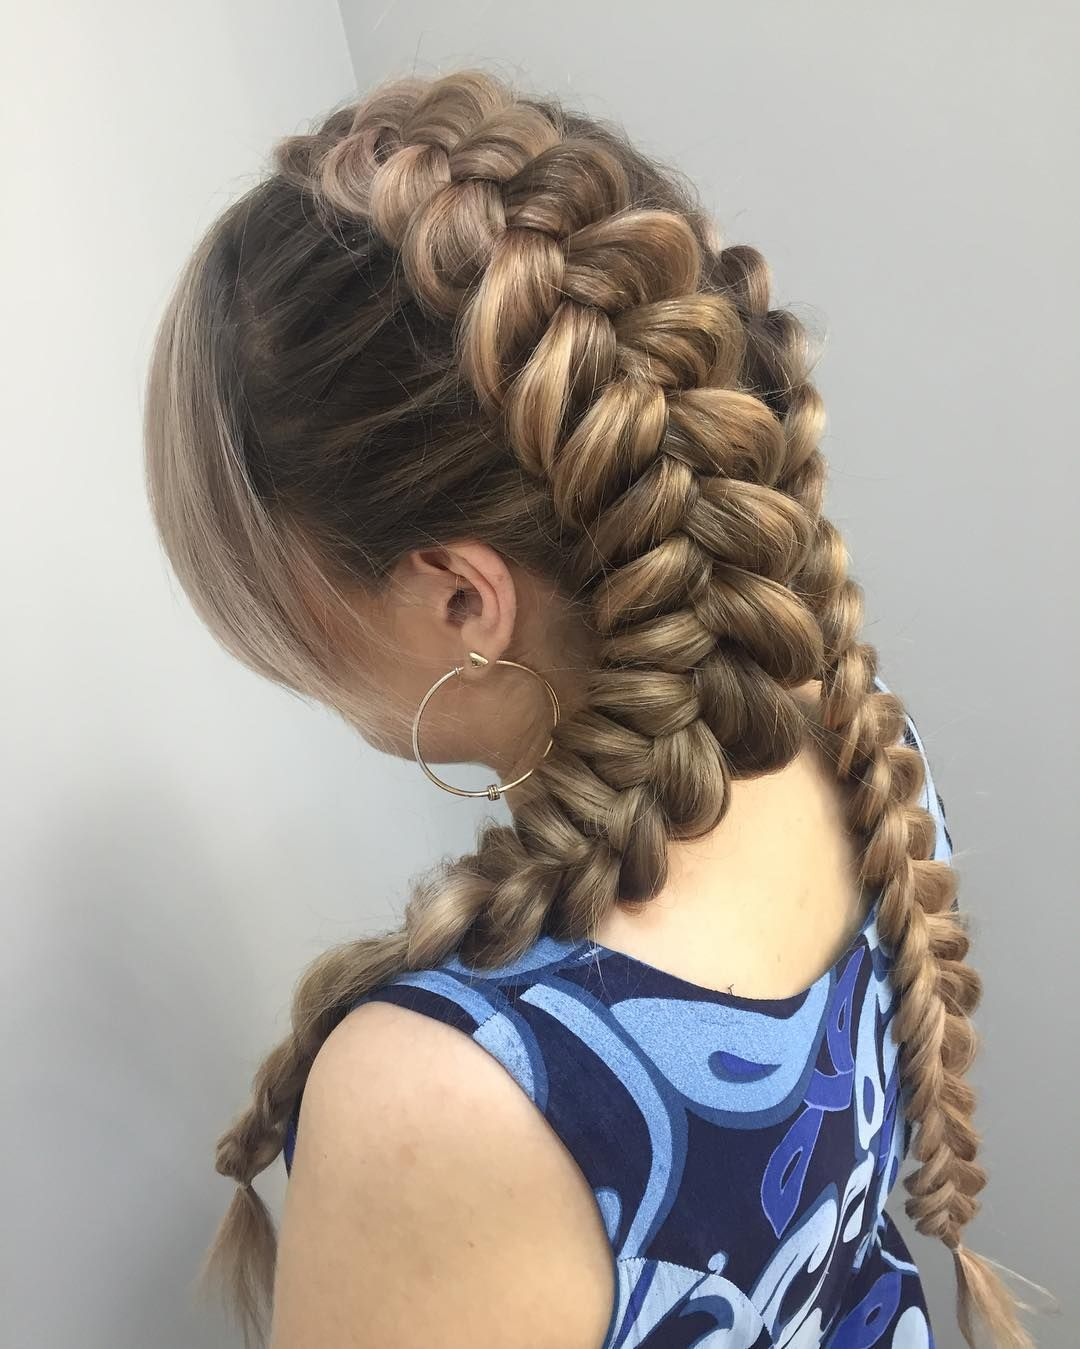 cool pigtails hairstyles